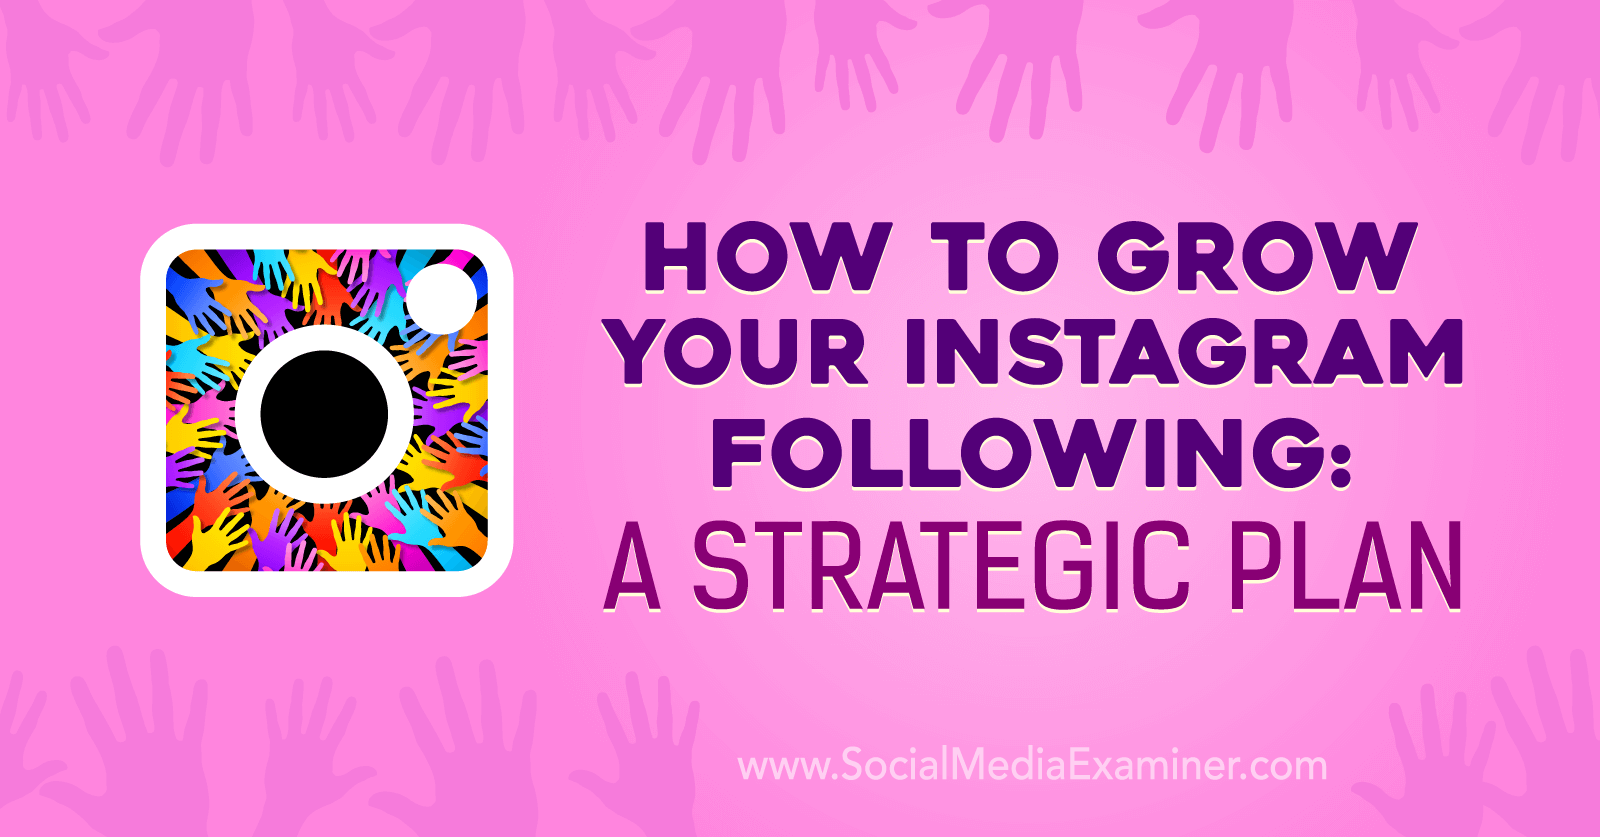 How to Grow Your Instagram Following: A Strategic Plan by Amanda Bond on Social Media Examiner.